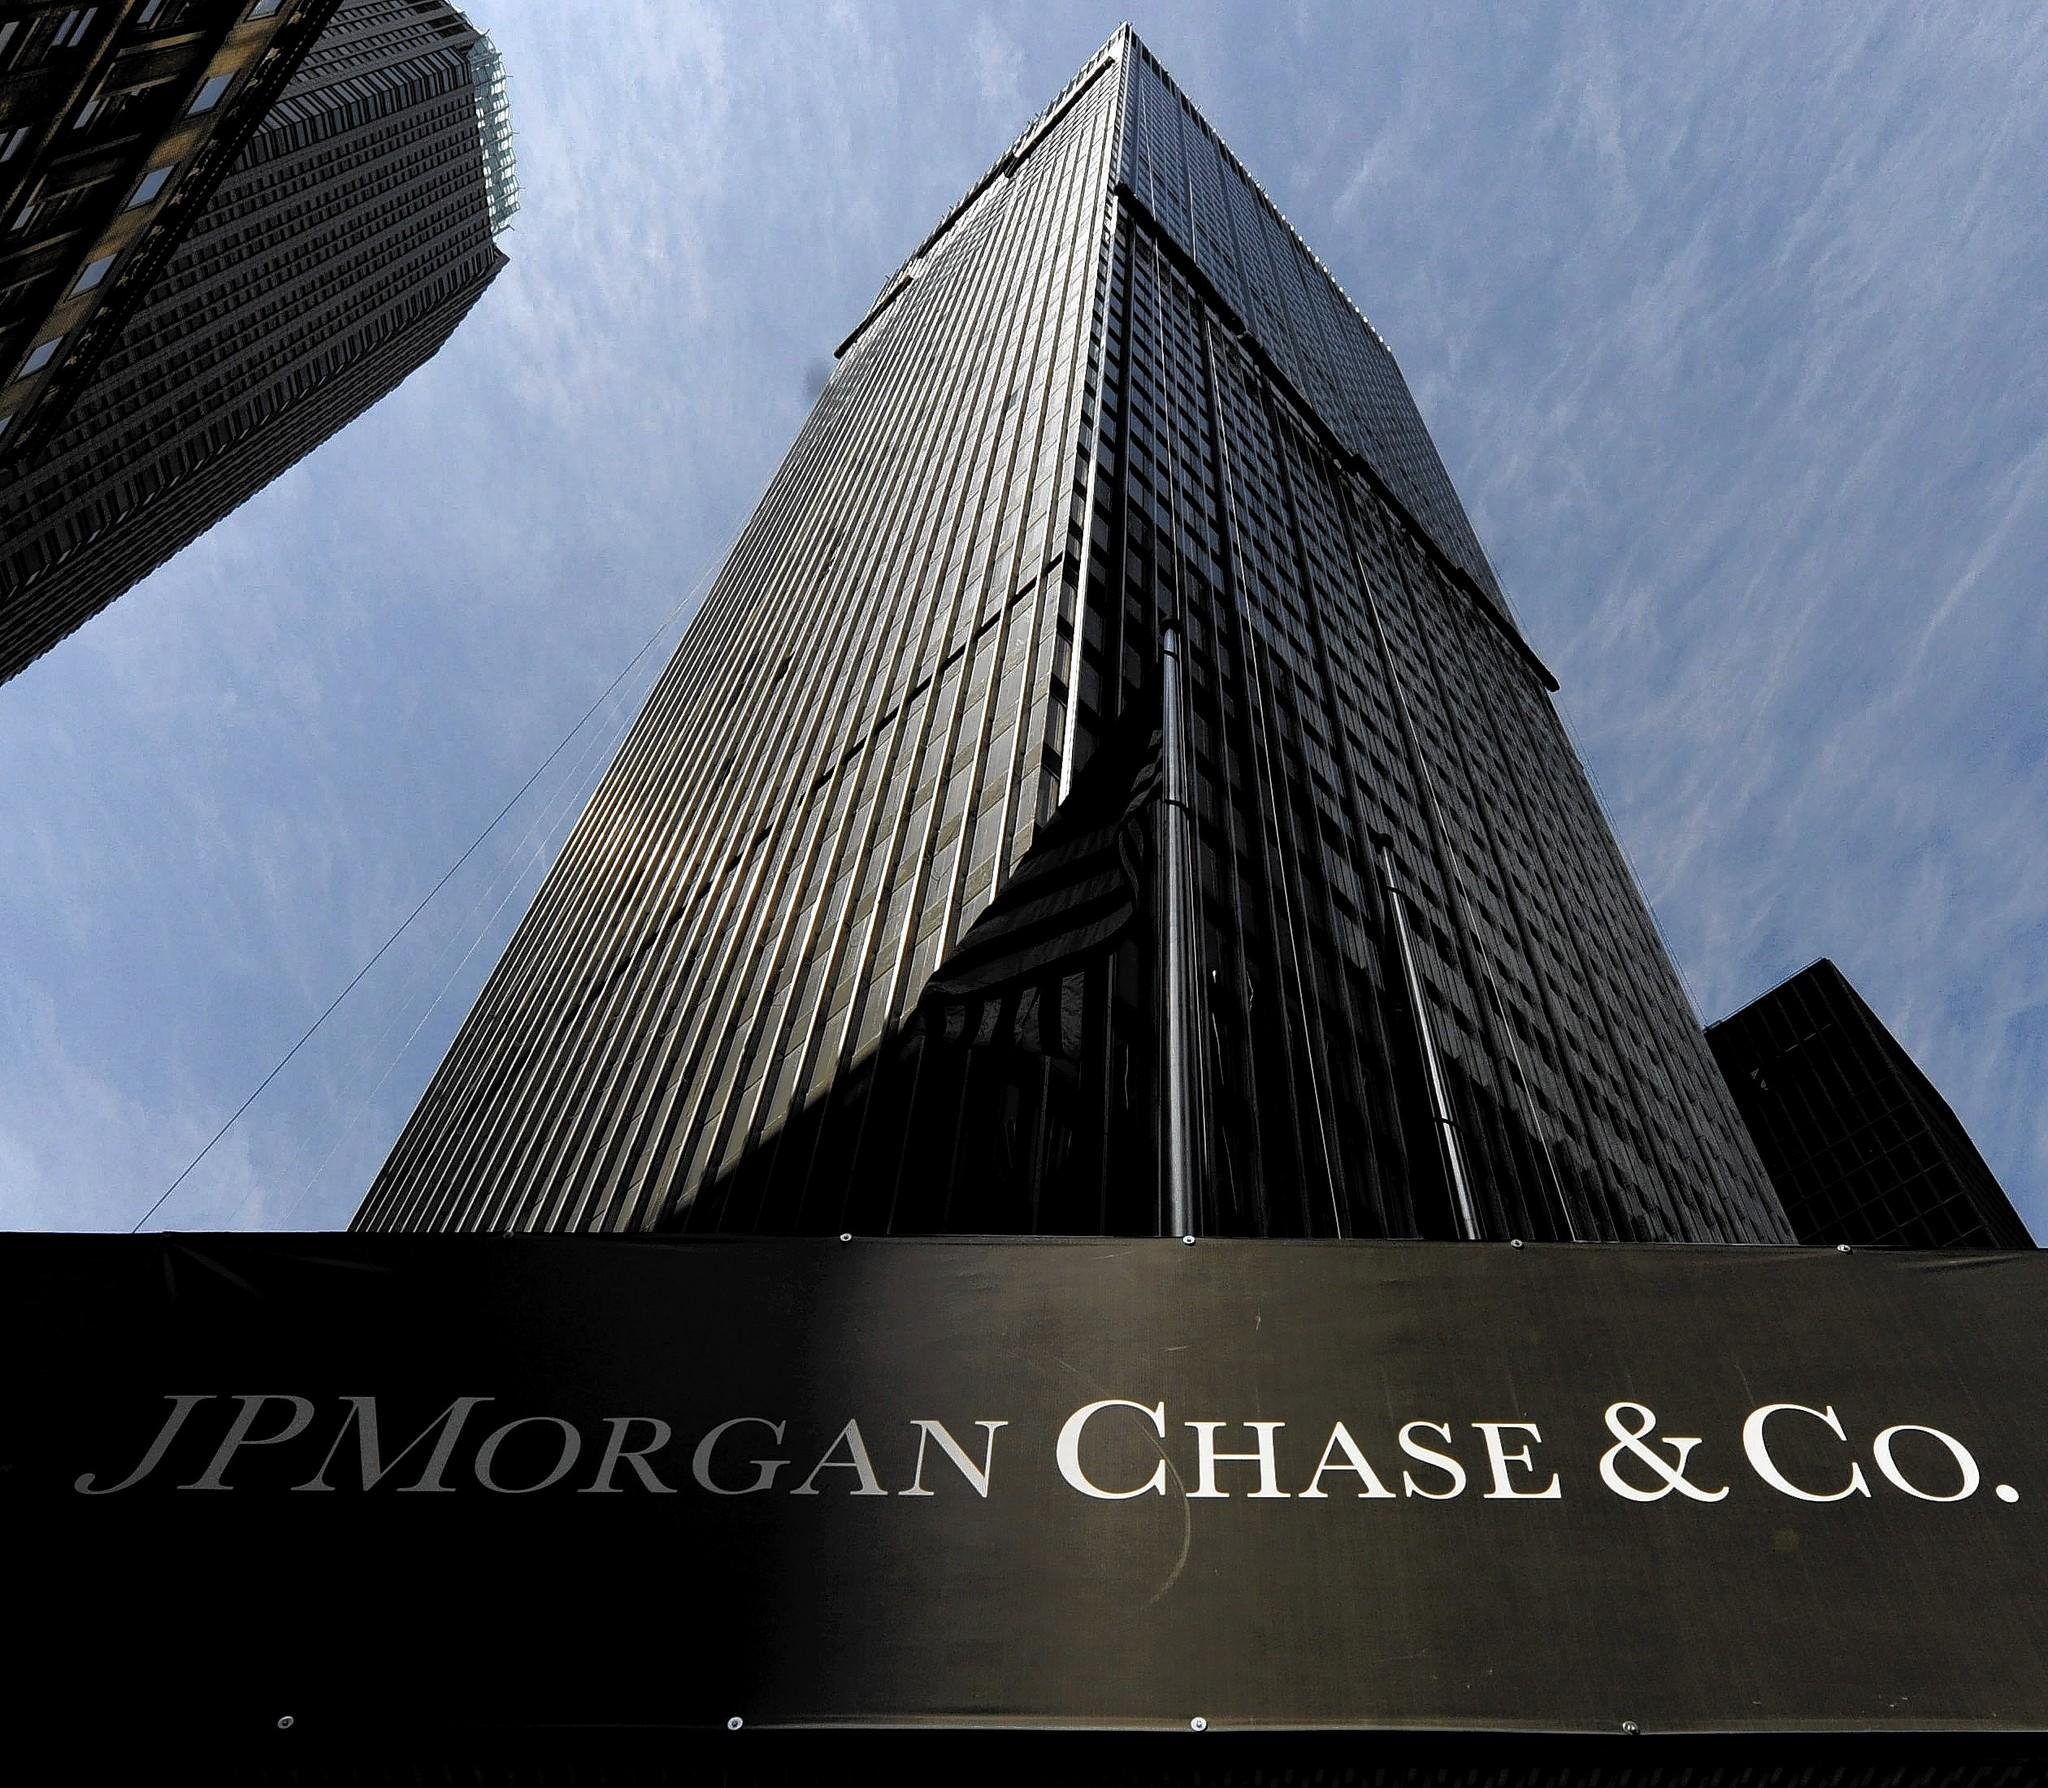 JPMorgan Chase, the nation's largest bank by assets, said it earned $5.3 billion in the fourth quarter, down 7% from $5.7 billion a year earlier. Above, its building in New York.